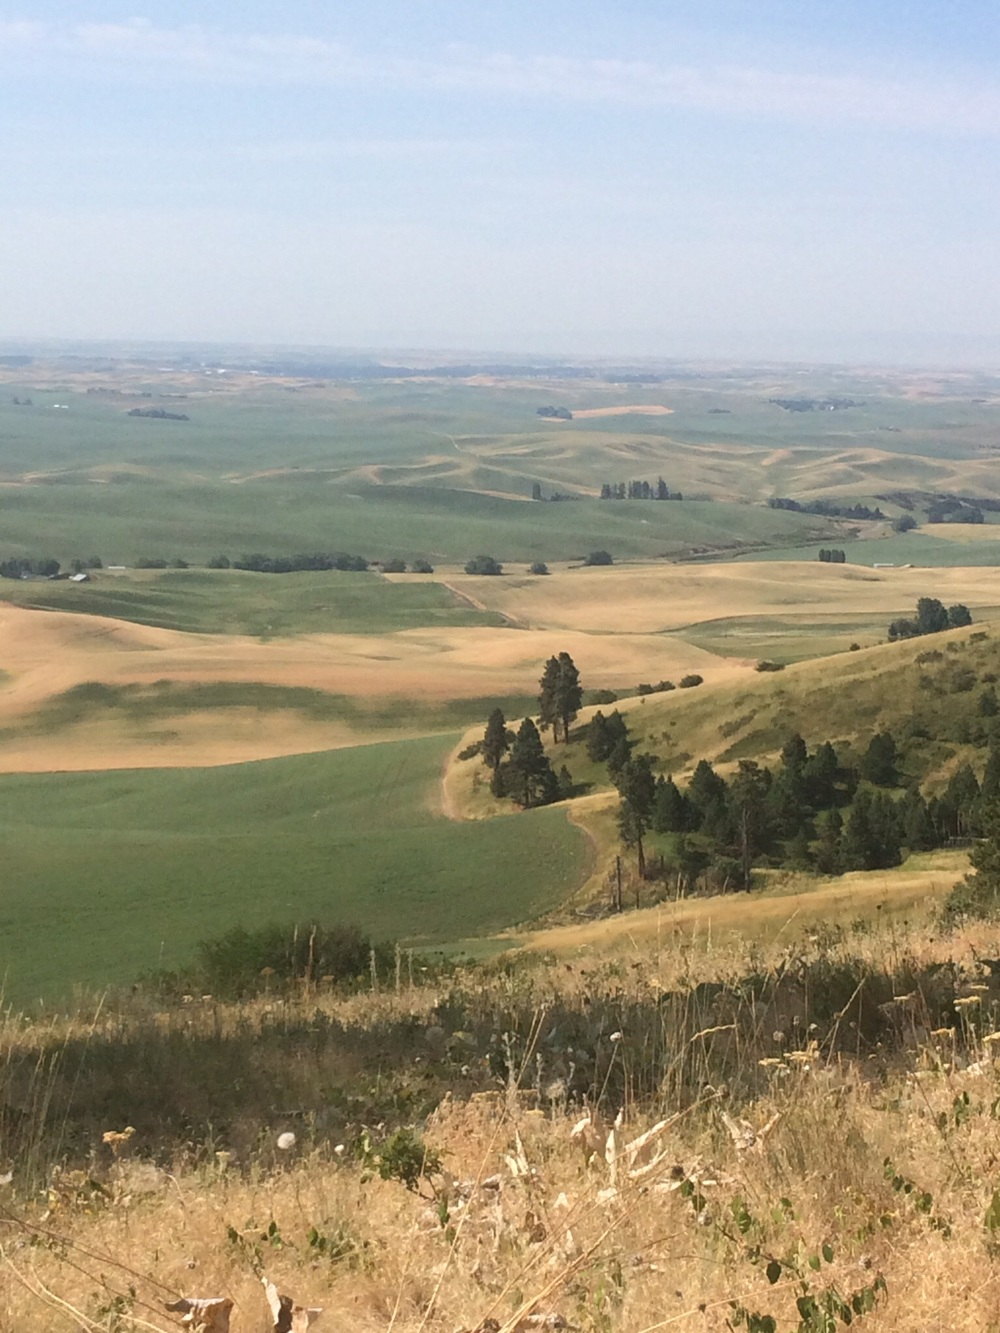 Looking out at the Palouse landscape from Kamiak Butte.